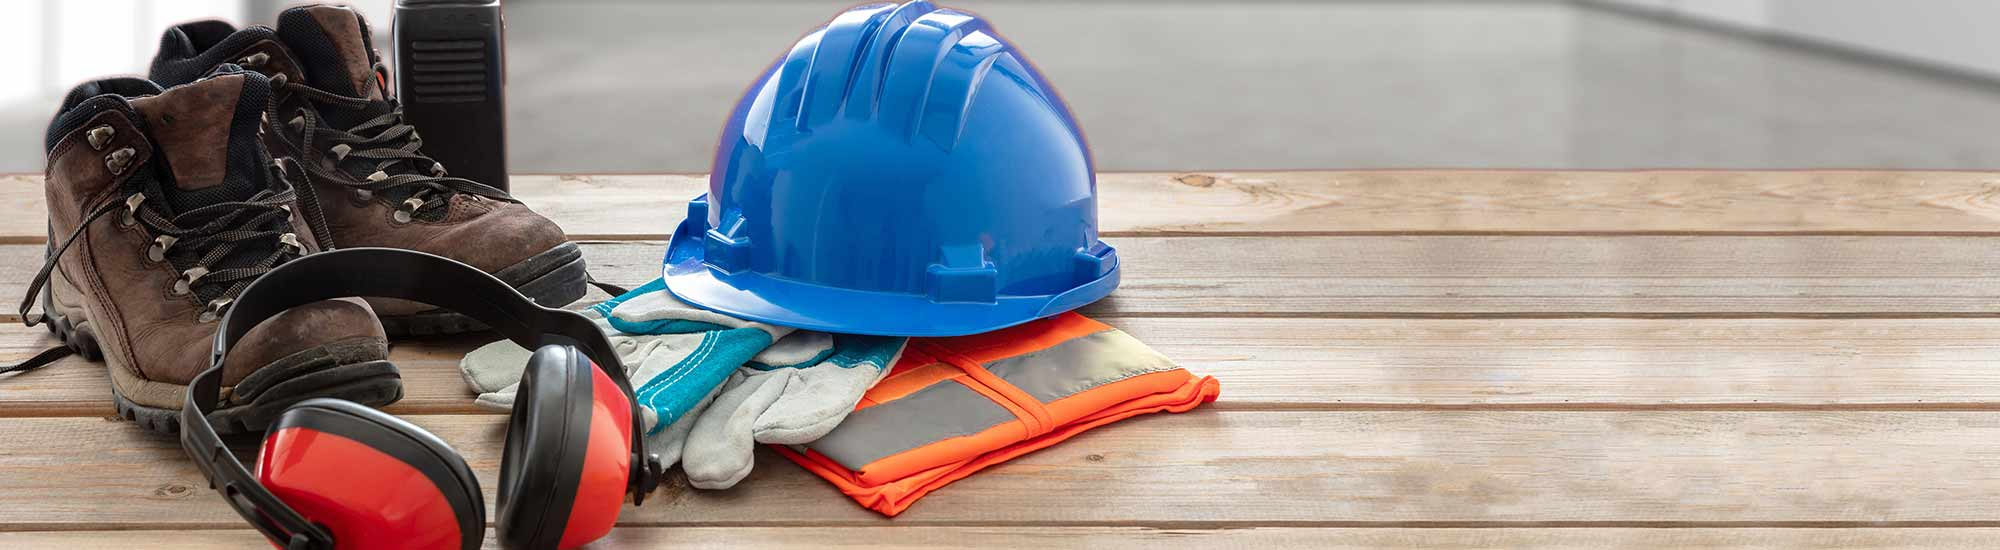 Work safety protection equipment. Industrial protective gear on wooden table, blur office or home interior background. Hardhat, boots, earmuffs, gloves, goggles